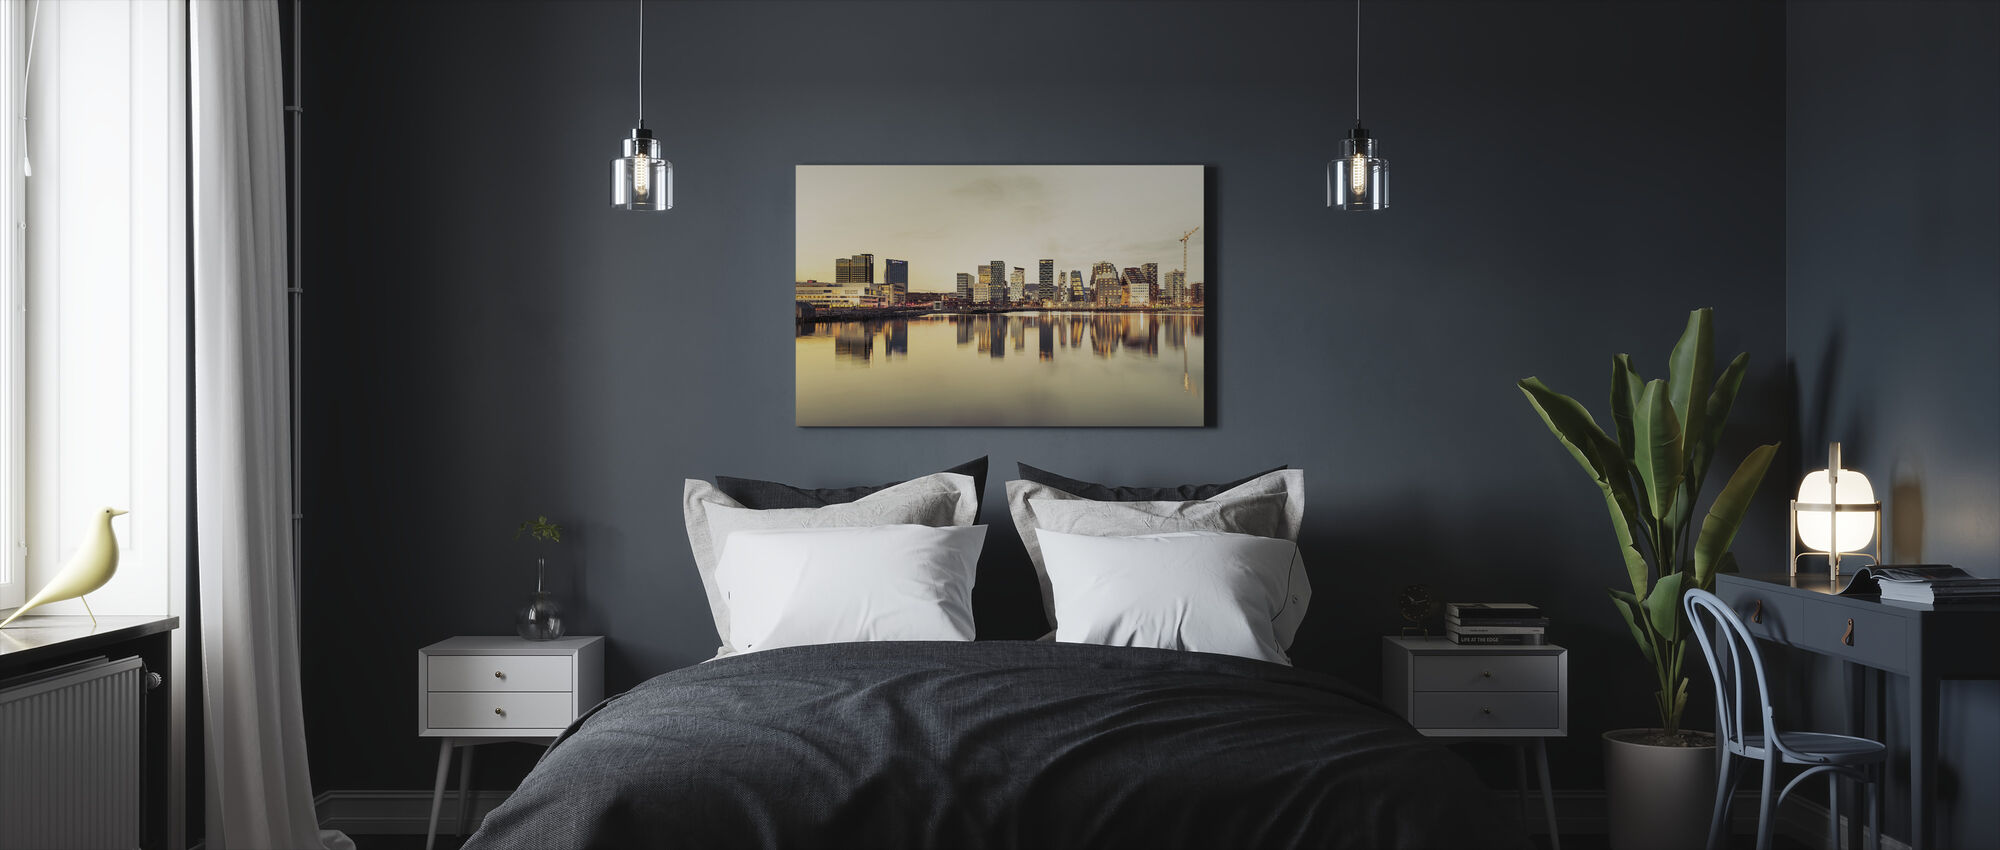 Oslo Skyline in Sunset - Canvas print - Bedroom